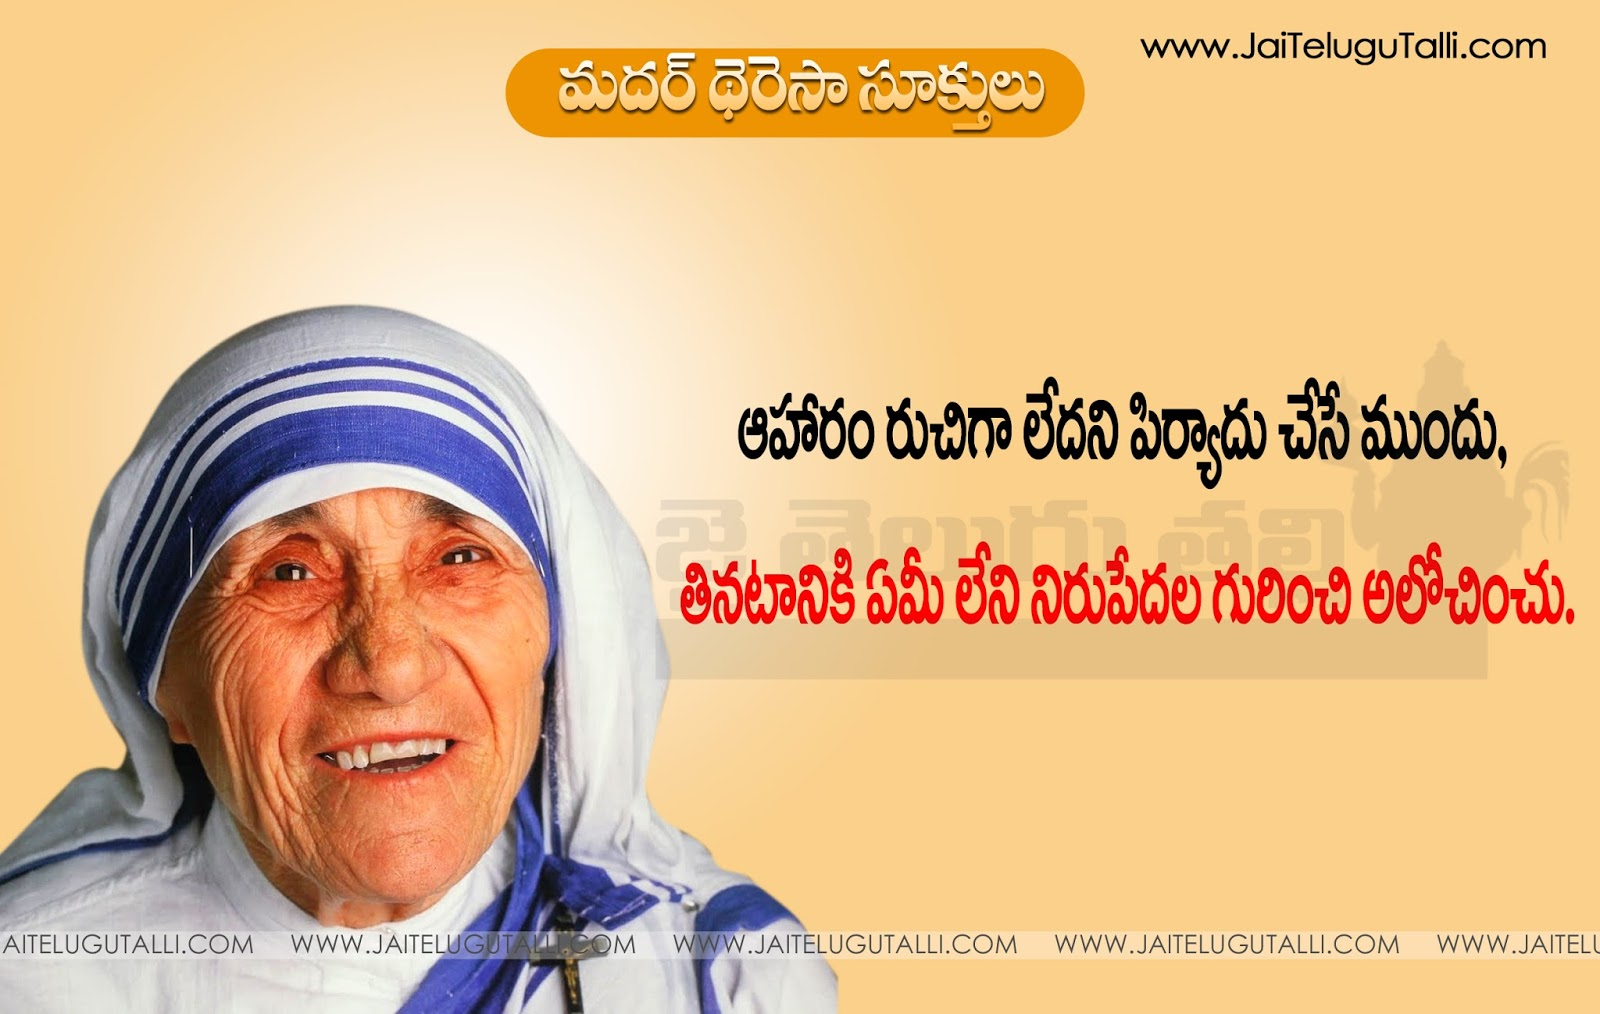 Telugu Mother Teresa Quotes Mother Teresa Quotes In Telugu Spiriting Mother  Teresa Quotes In Telugu Language